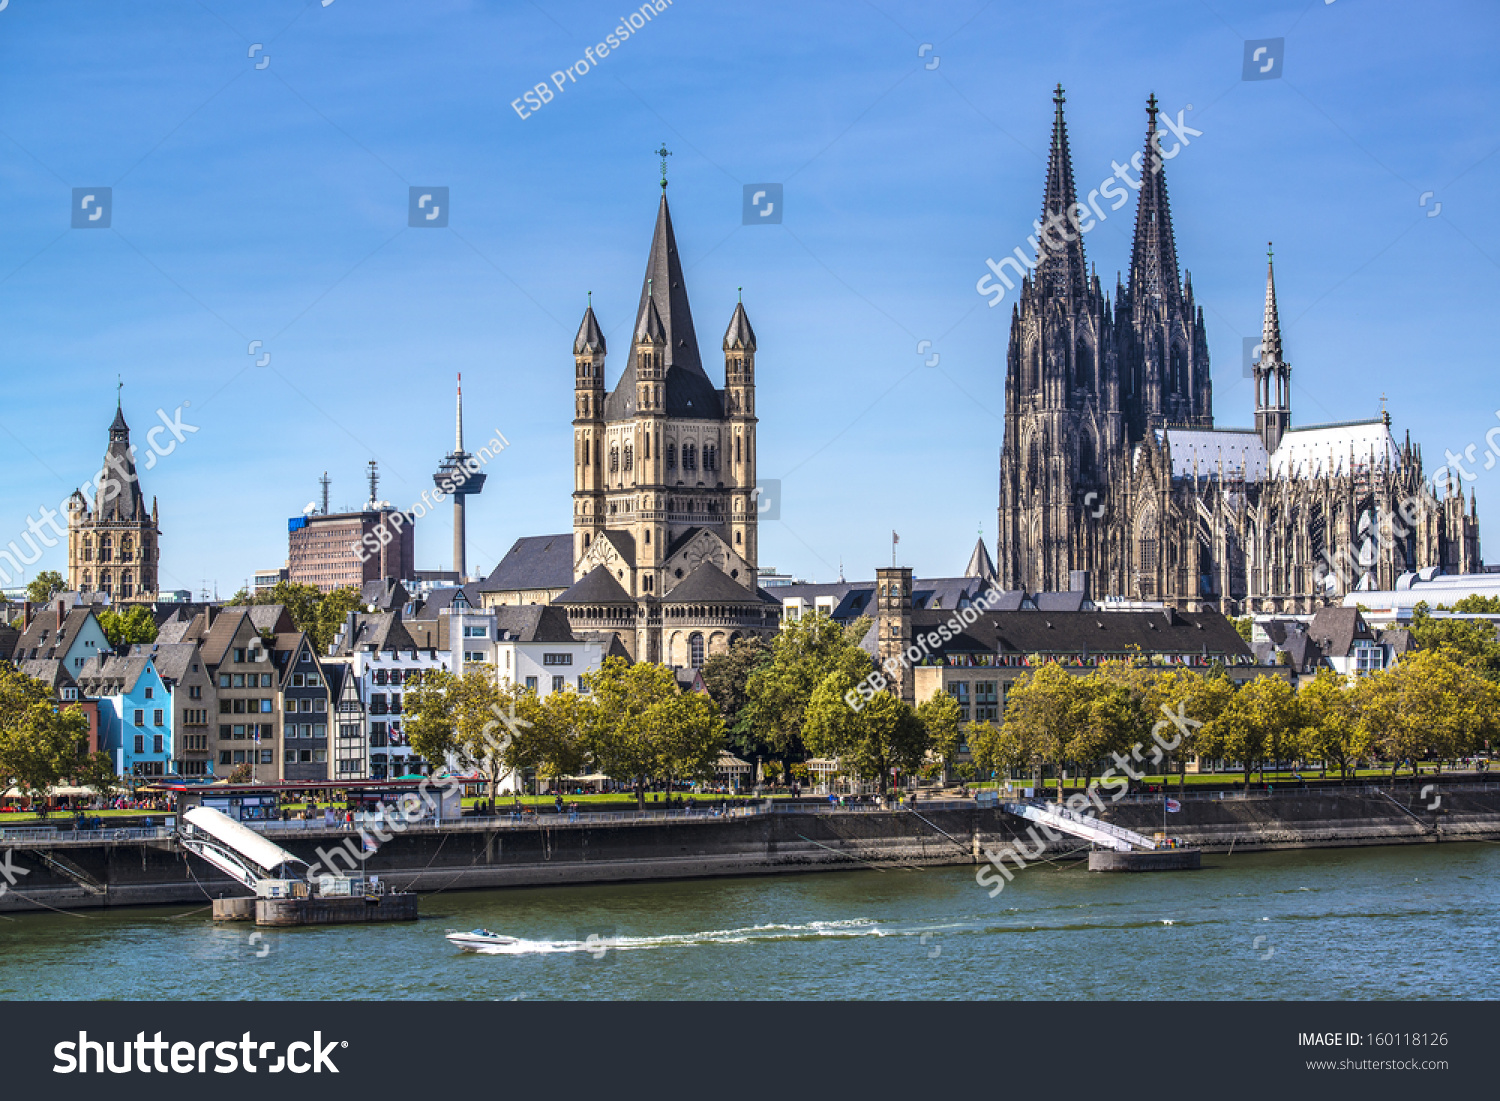 cologne germany aerial view over rhine stock photo 160118126 shutterstock. Black Bedroom Furniture Sets. Home Design Ideas